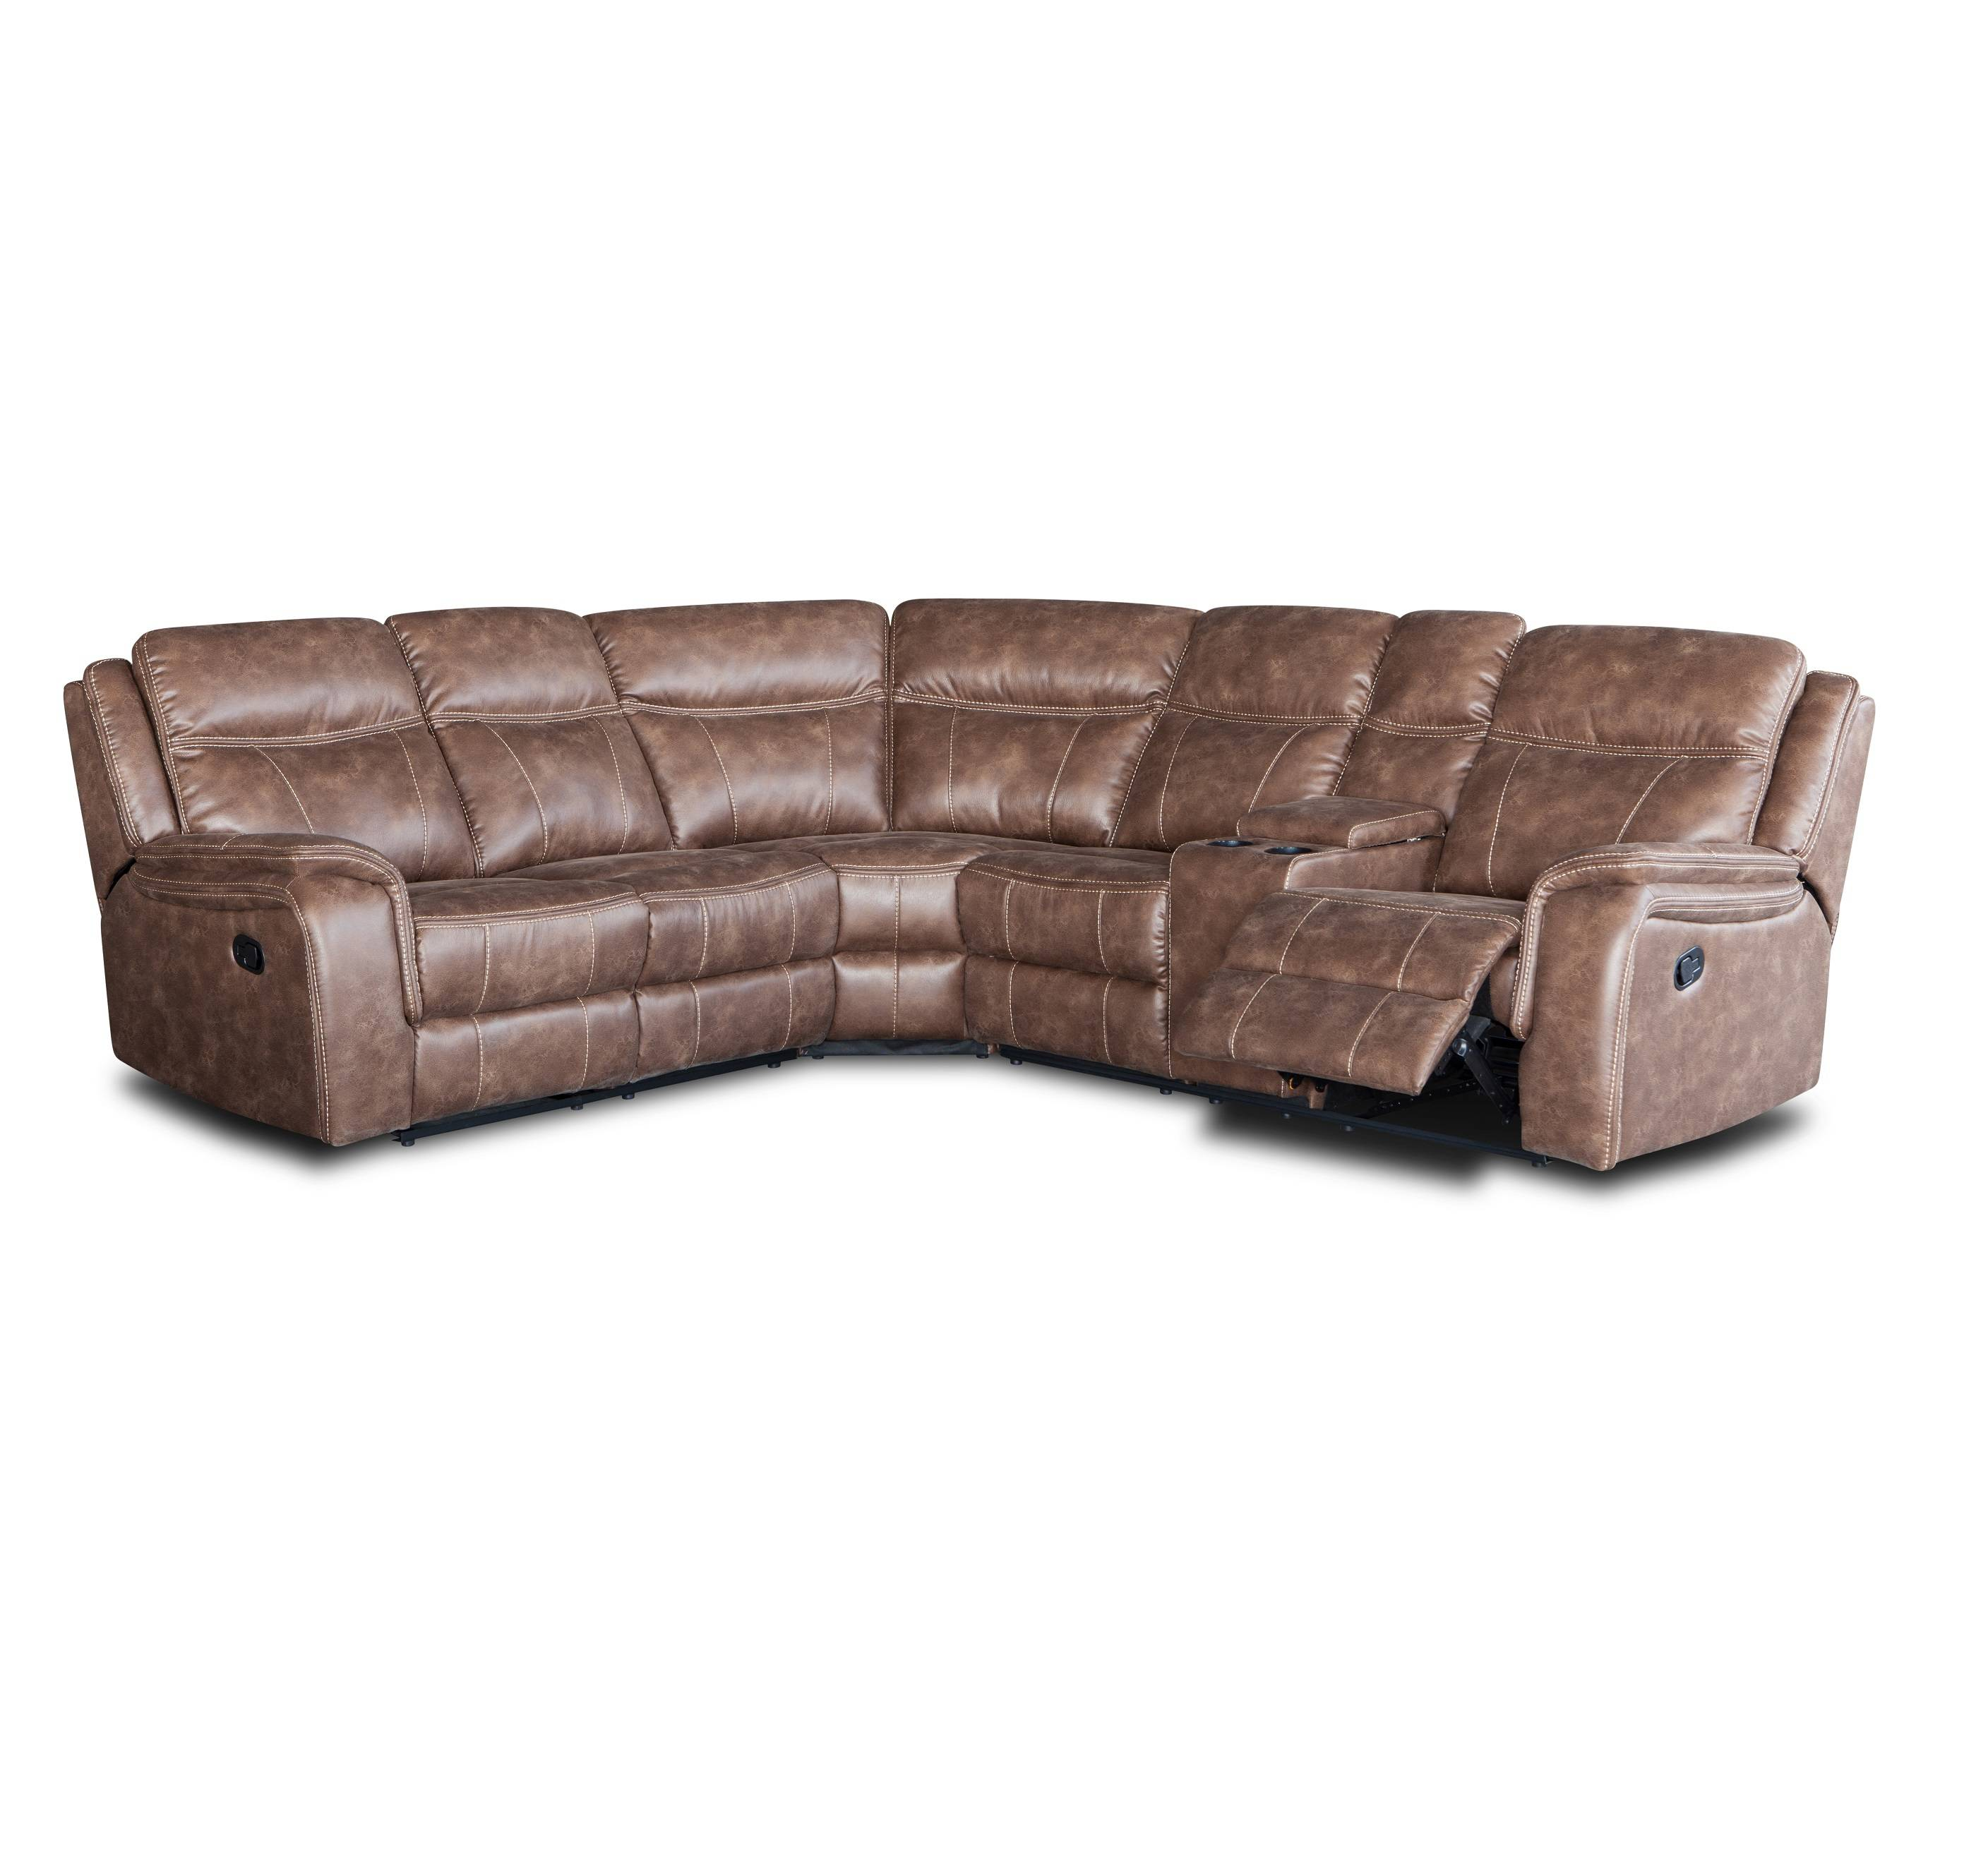 Functional 5 seat u shape brown leather recliner sofa with cup holder